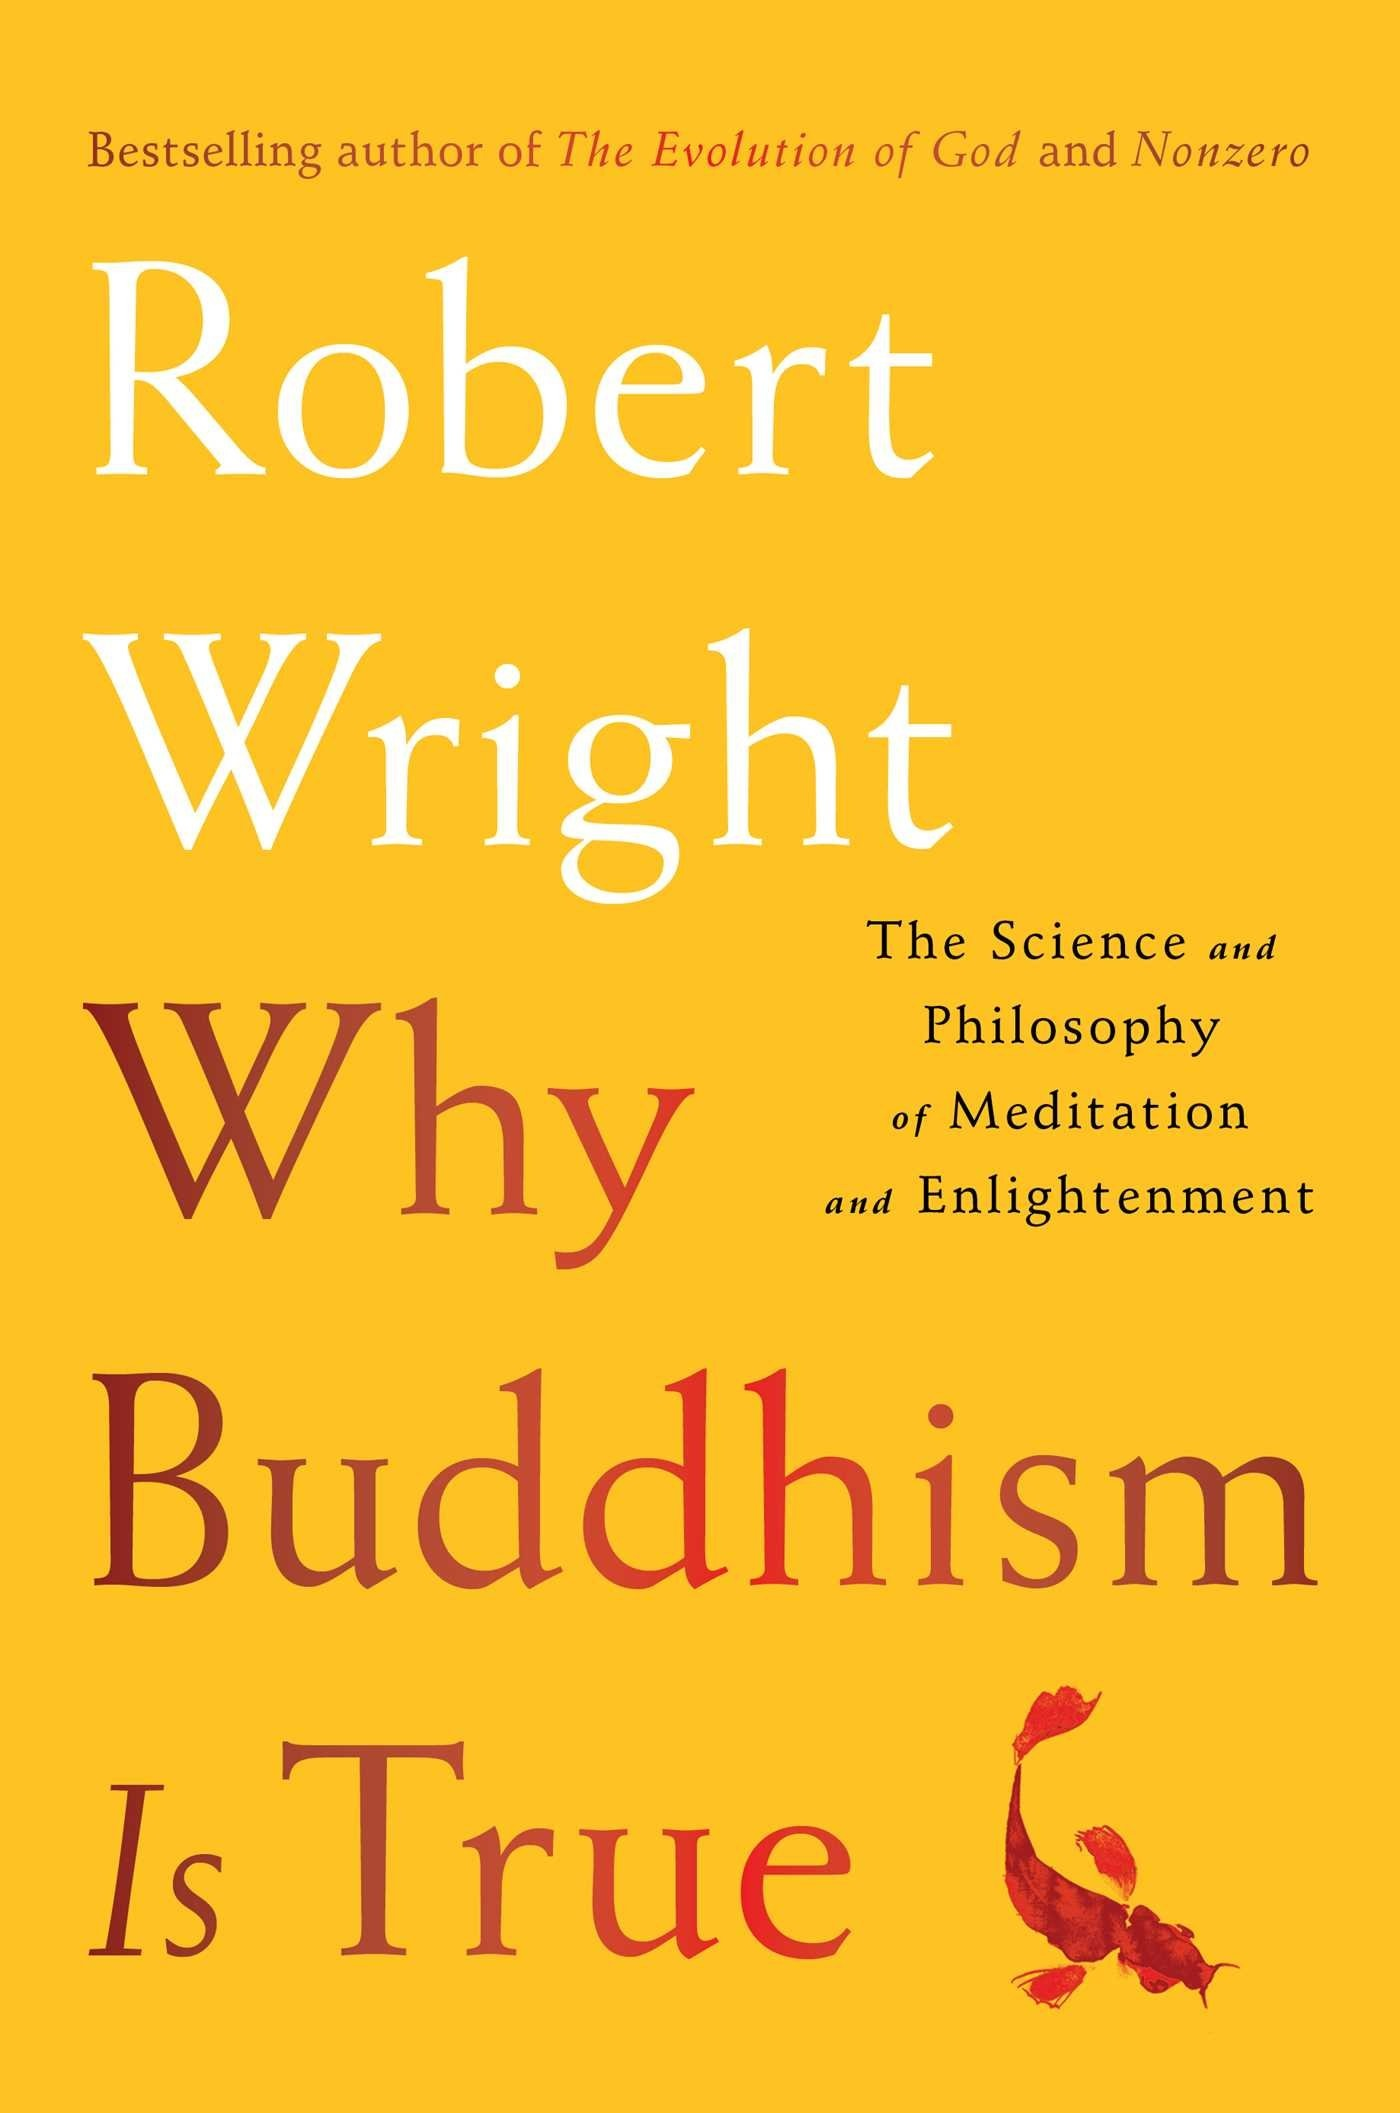 download ebook Why Buddhism is True by Robert Wright mobi / kindle